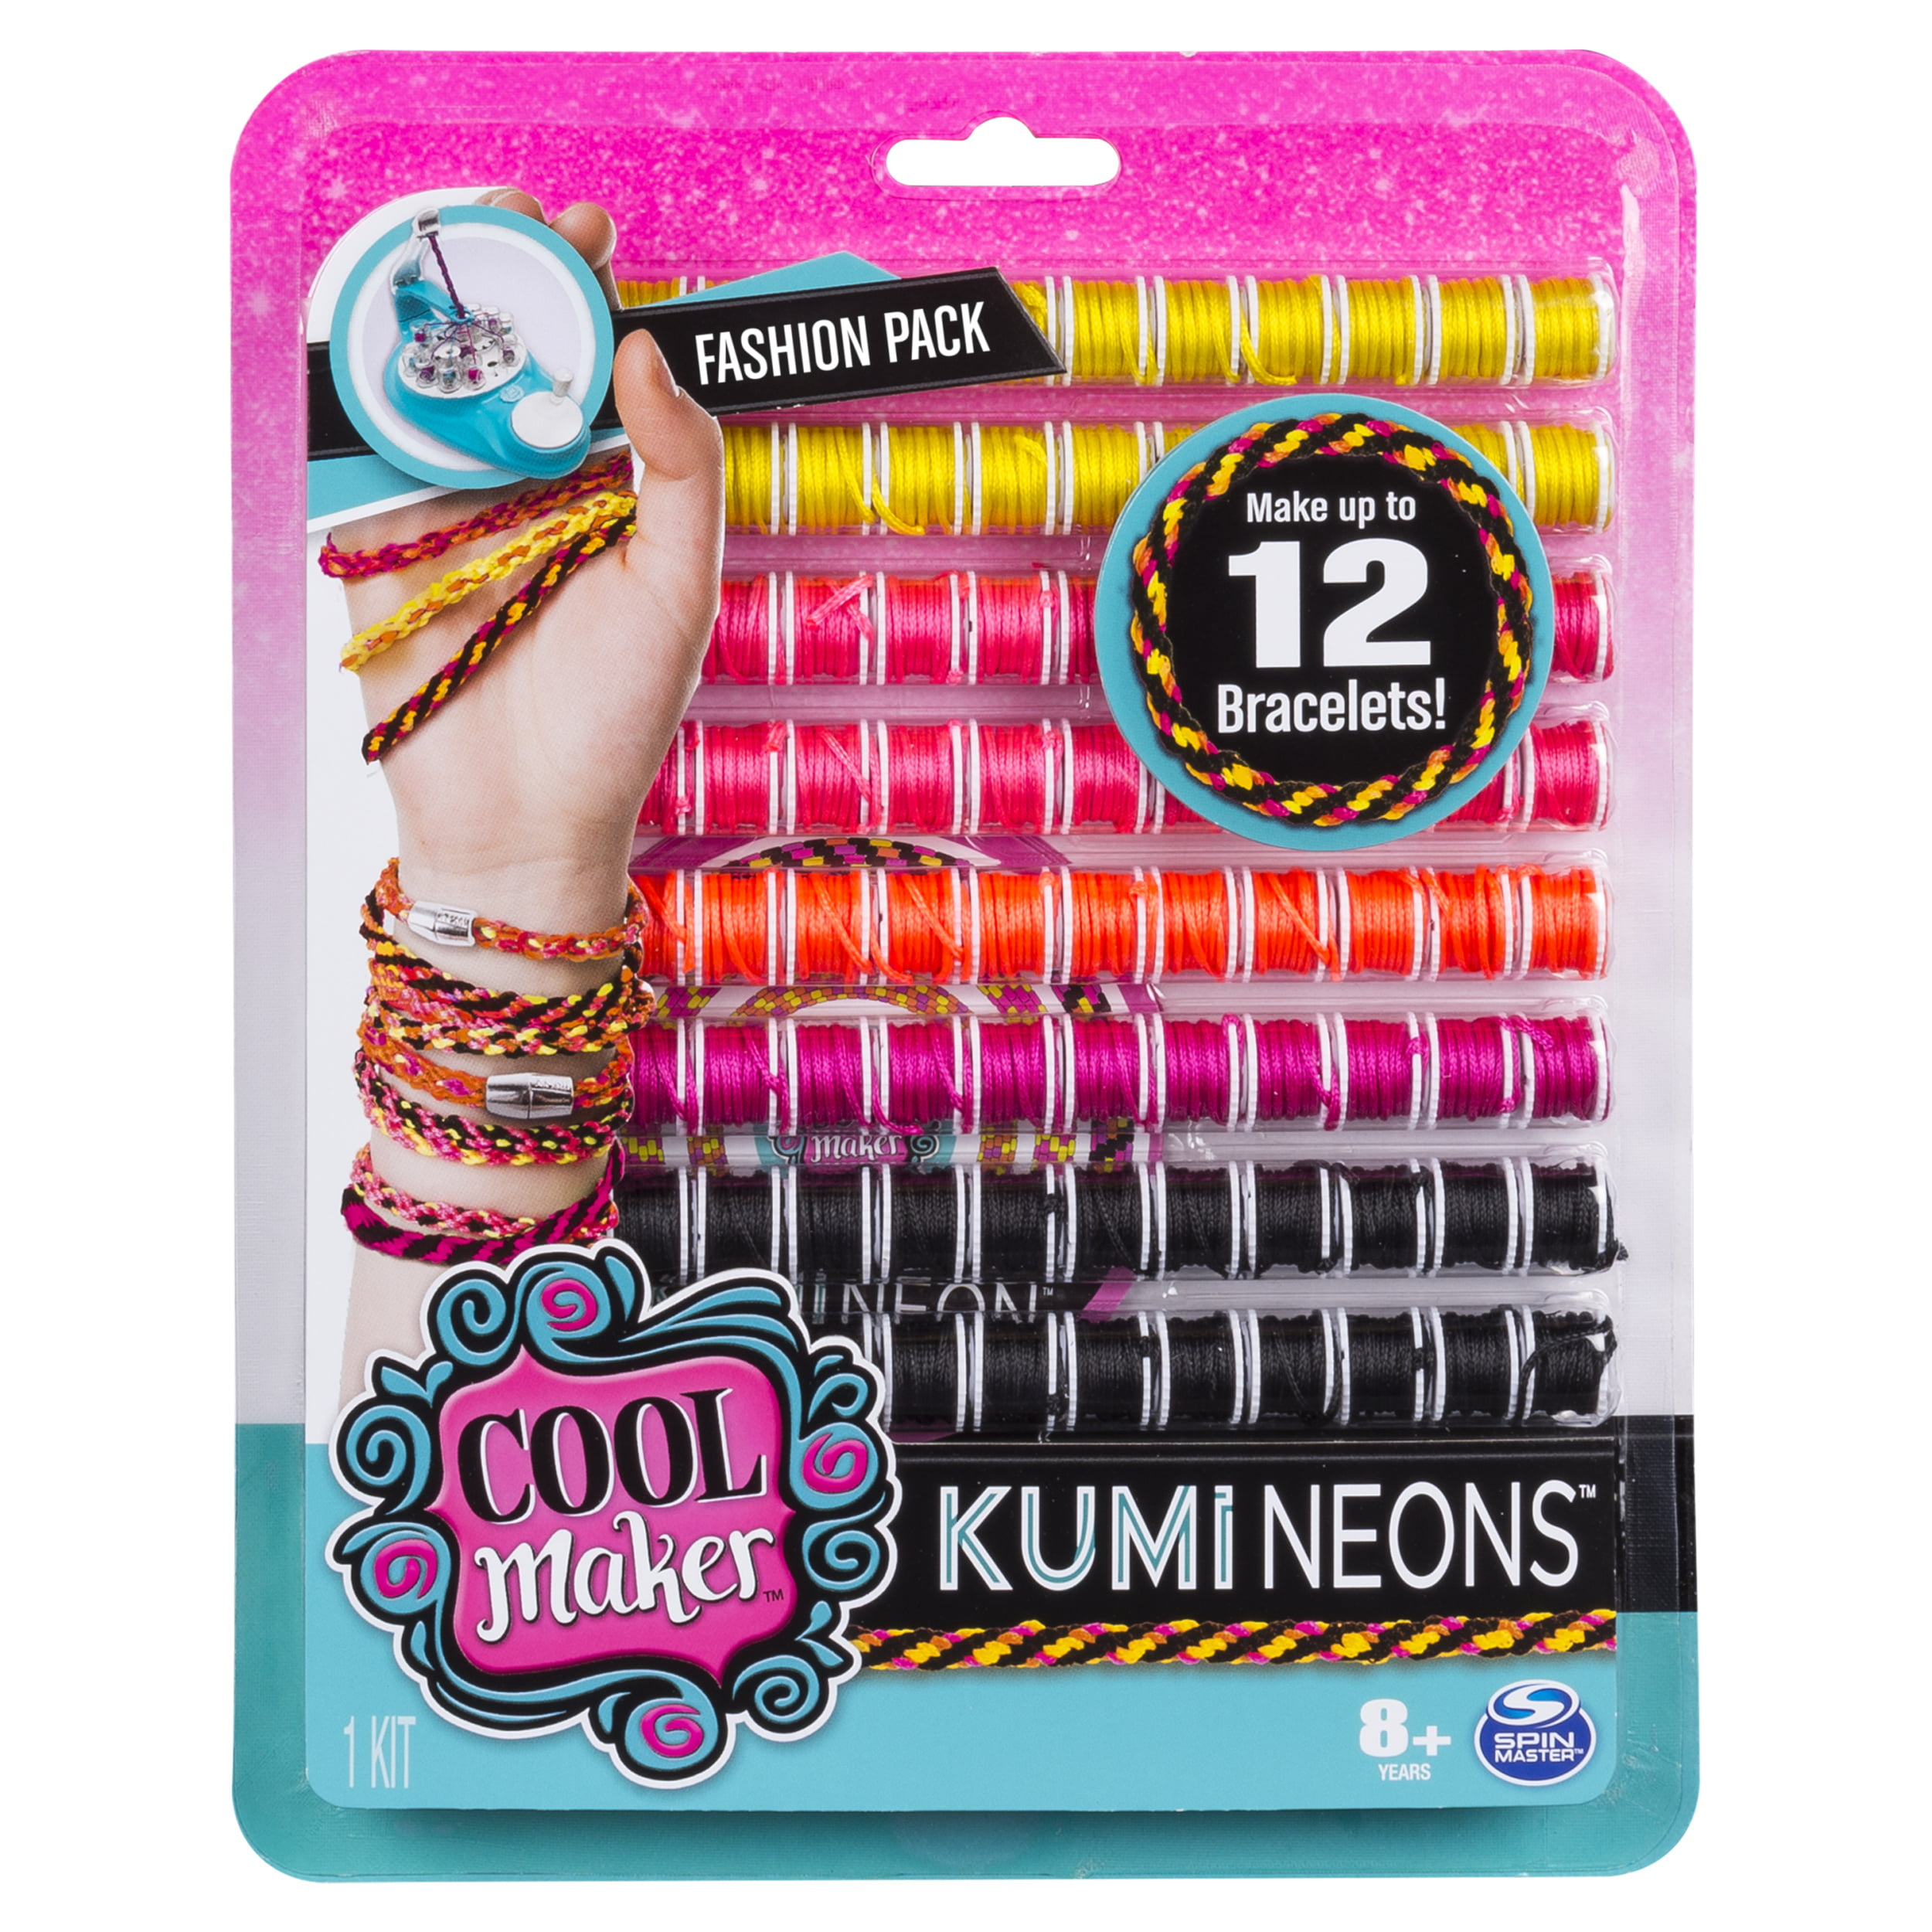 Cool Maker KumiNeons Fashion Pack Activity Kit